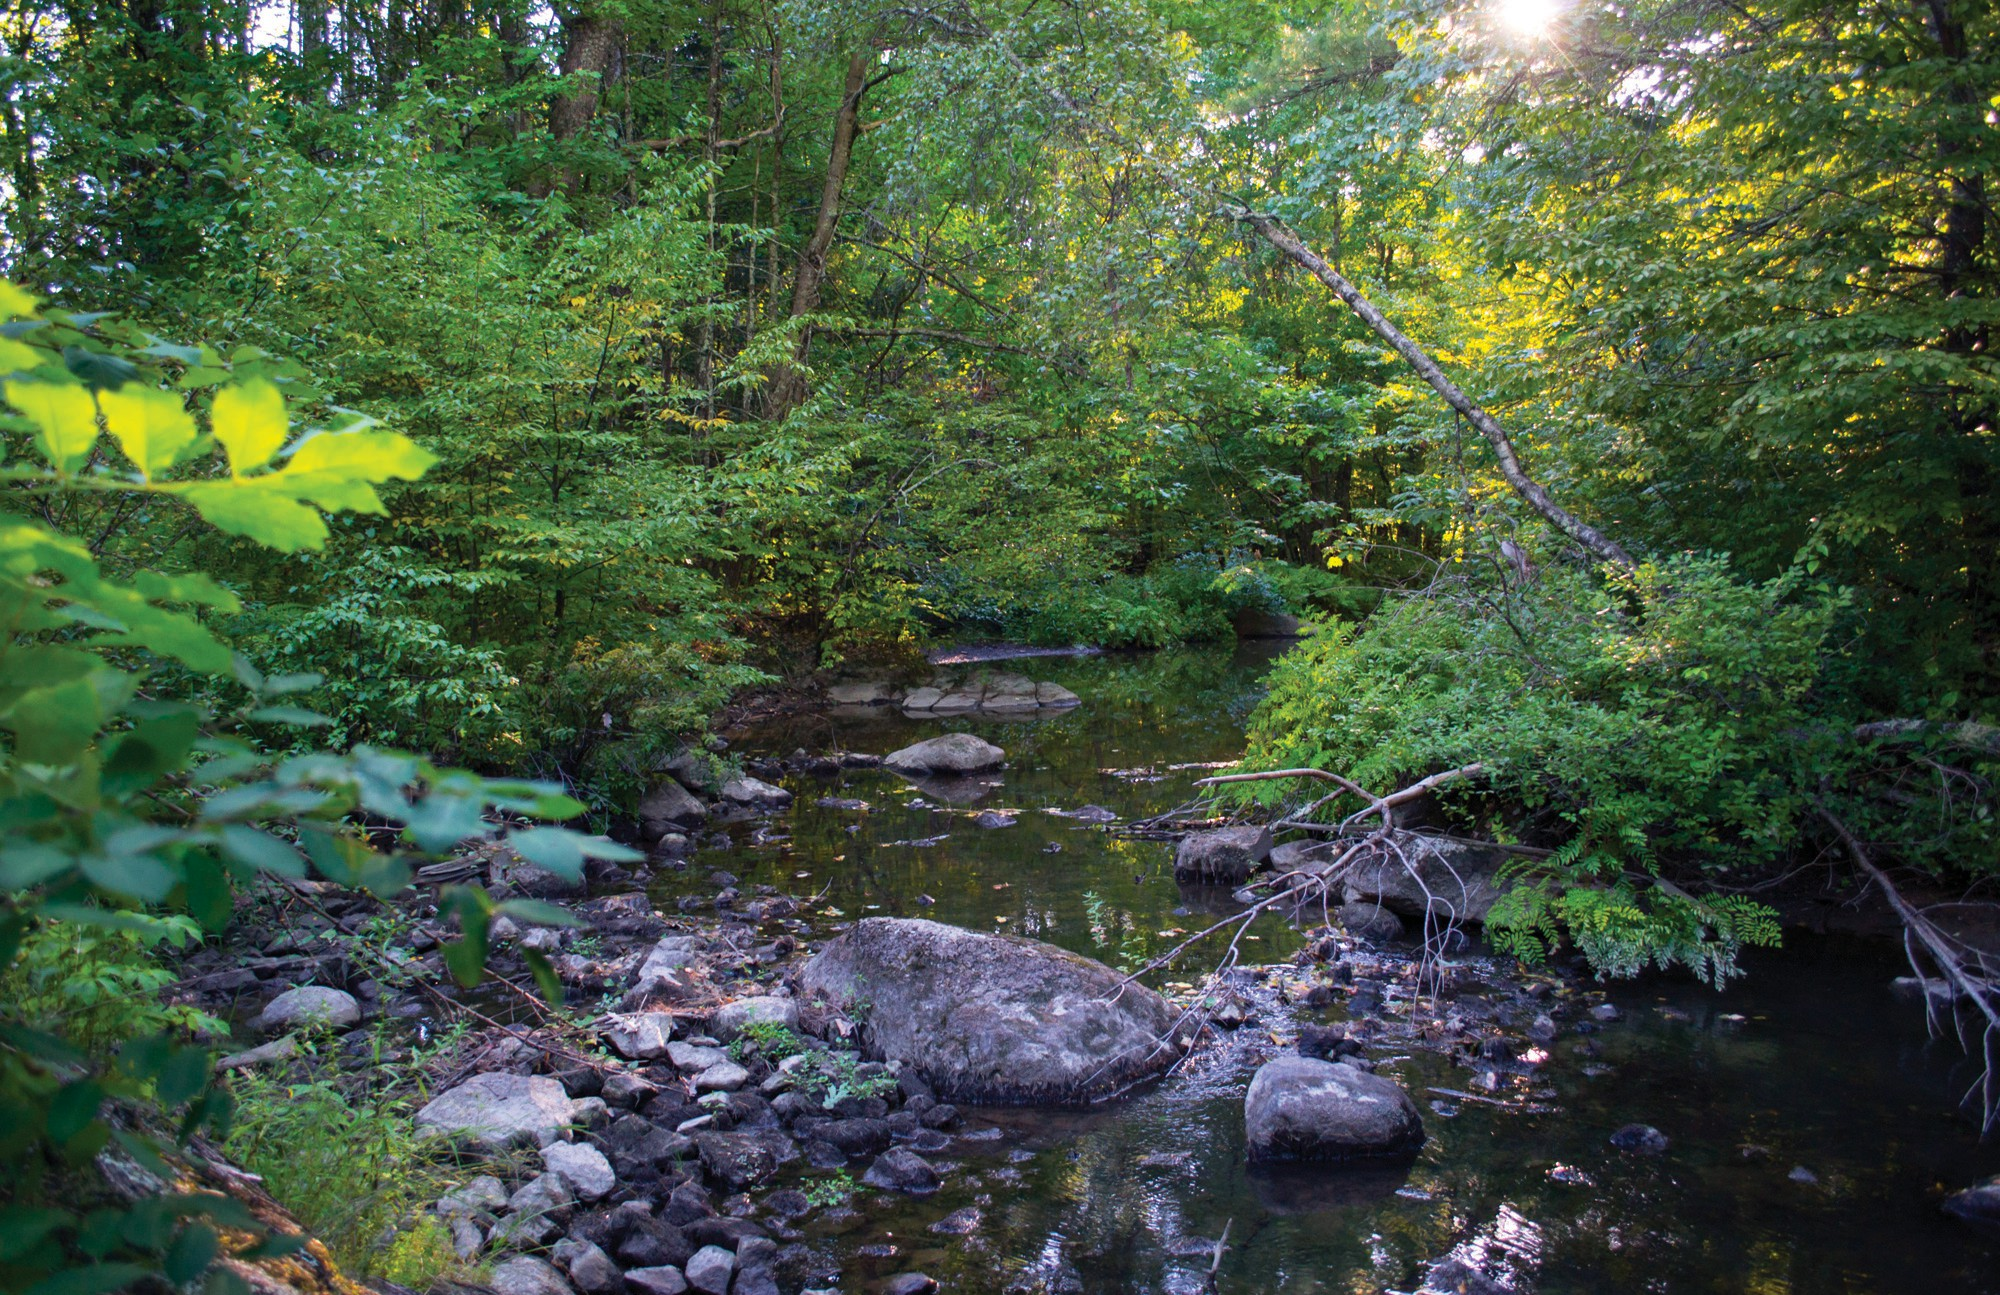 A portion of Thatcher Brook near I-95 in Biddeford is pictured on Sept. 14. The brook has been heavily polluted for years, and efforts to clean up the water are currently underway as the city awaits potential funding from the Maine Department of Environmental Protection.